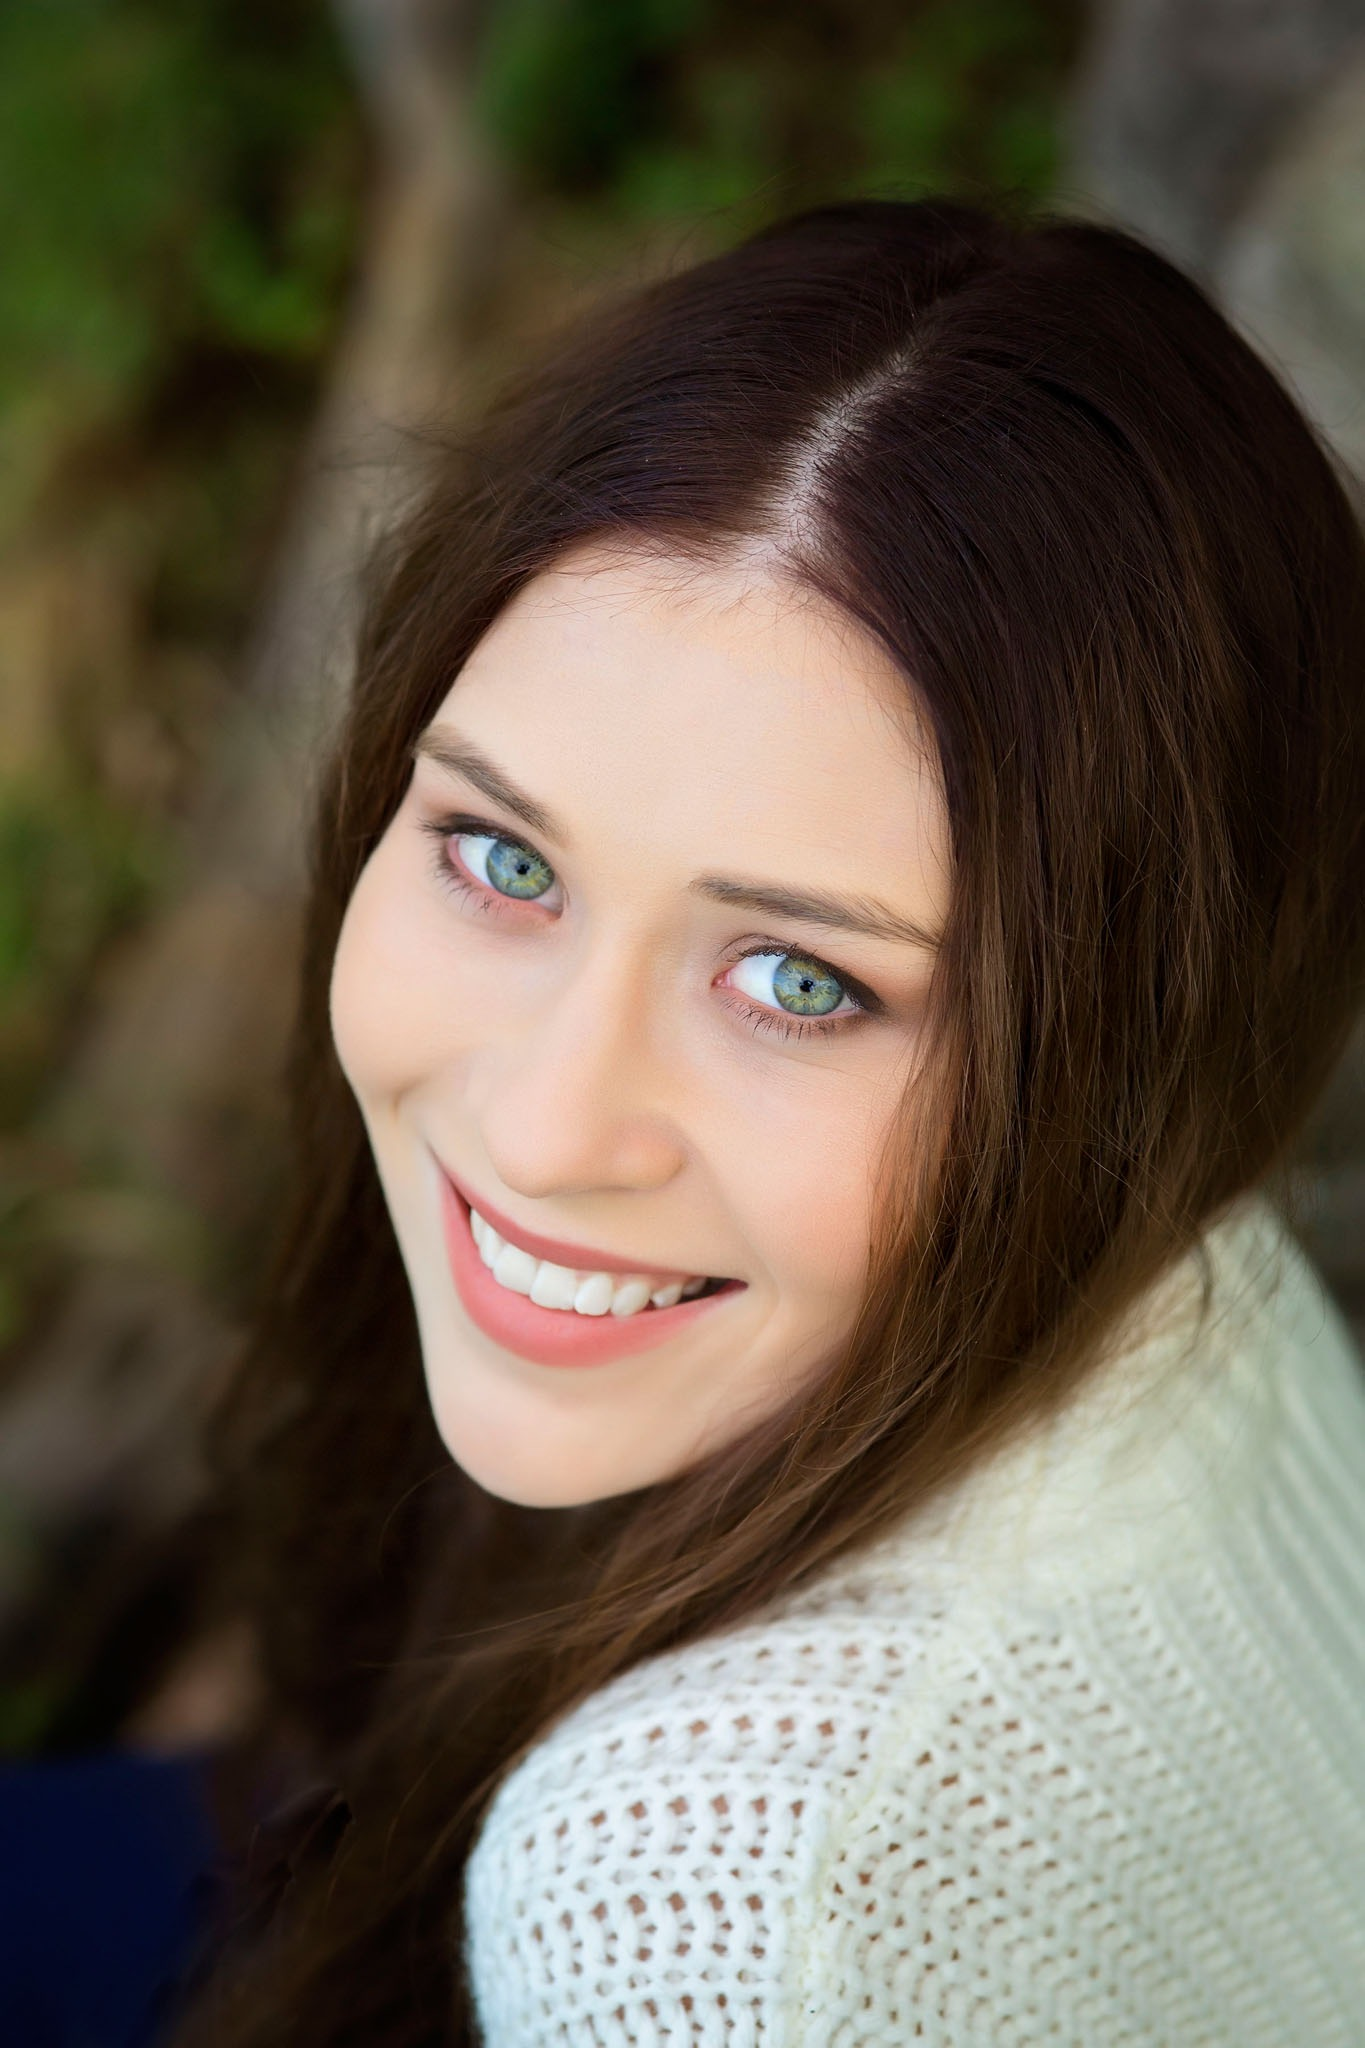 Green Eyed Beauty by Peter Karp Photography